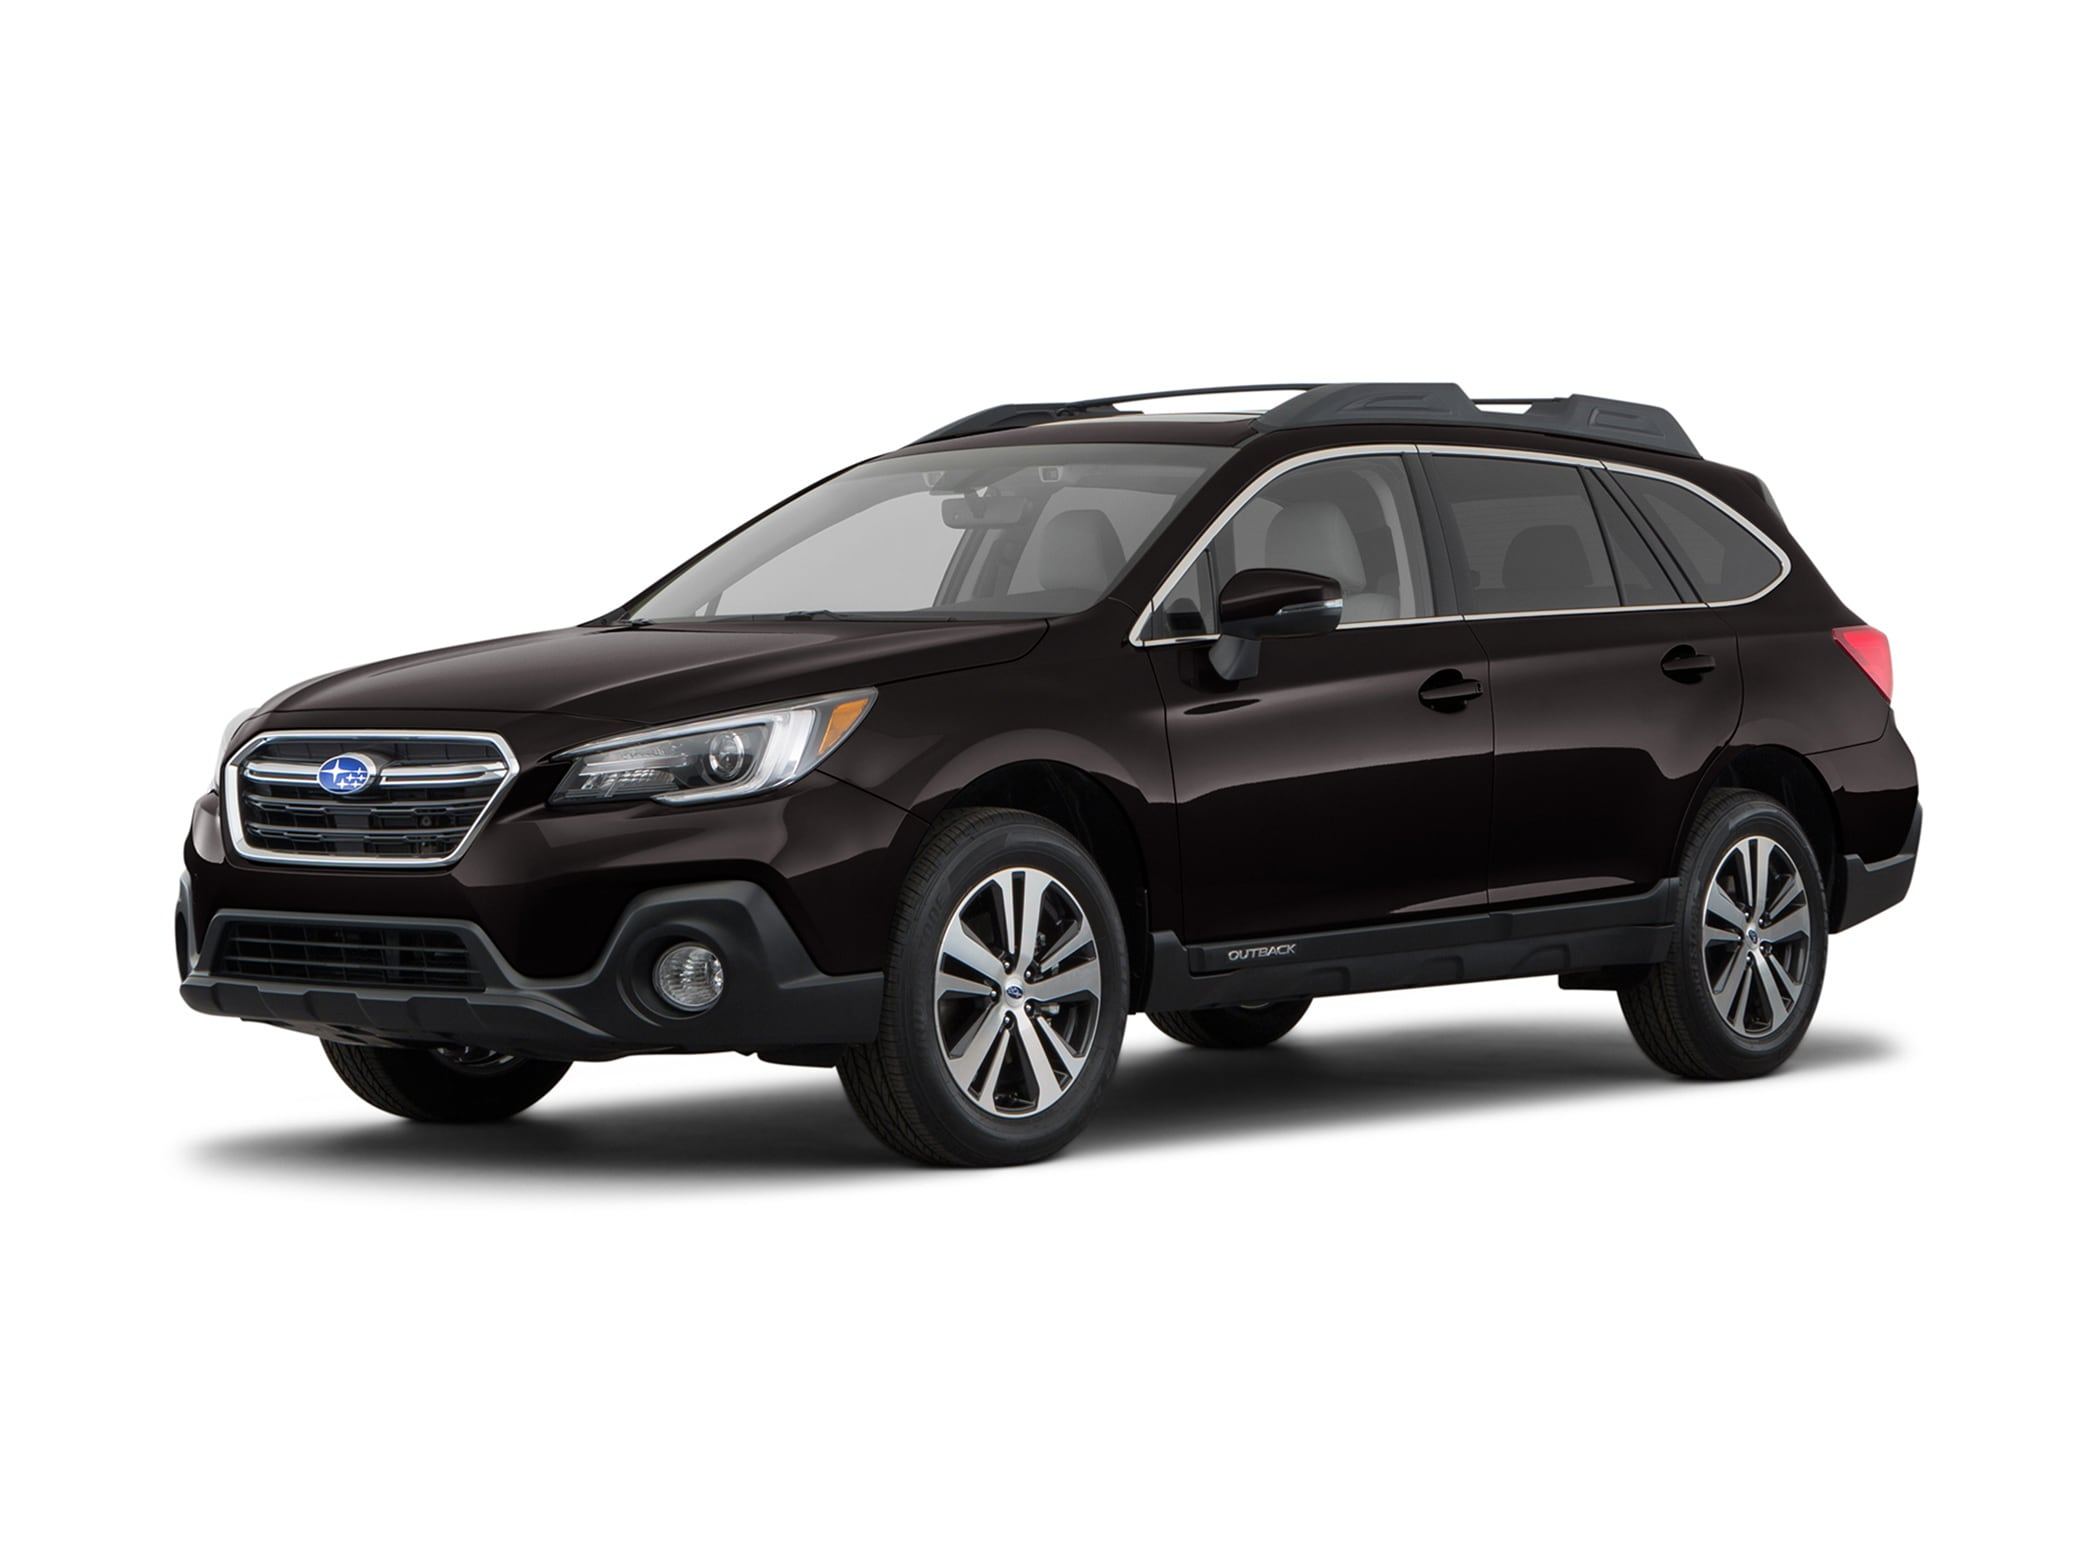 2019 Subaru Outback 3.6R Limited SUV For Sale near Tri Cities